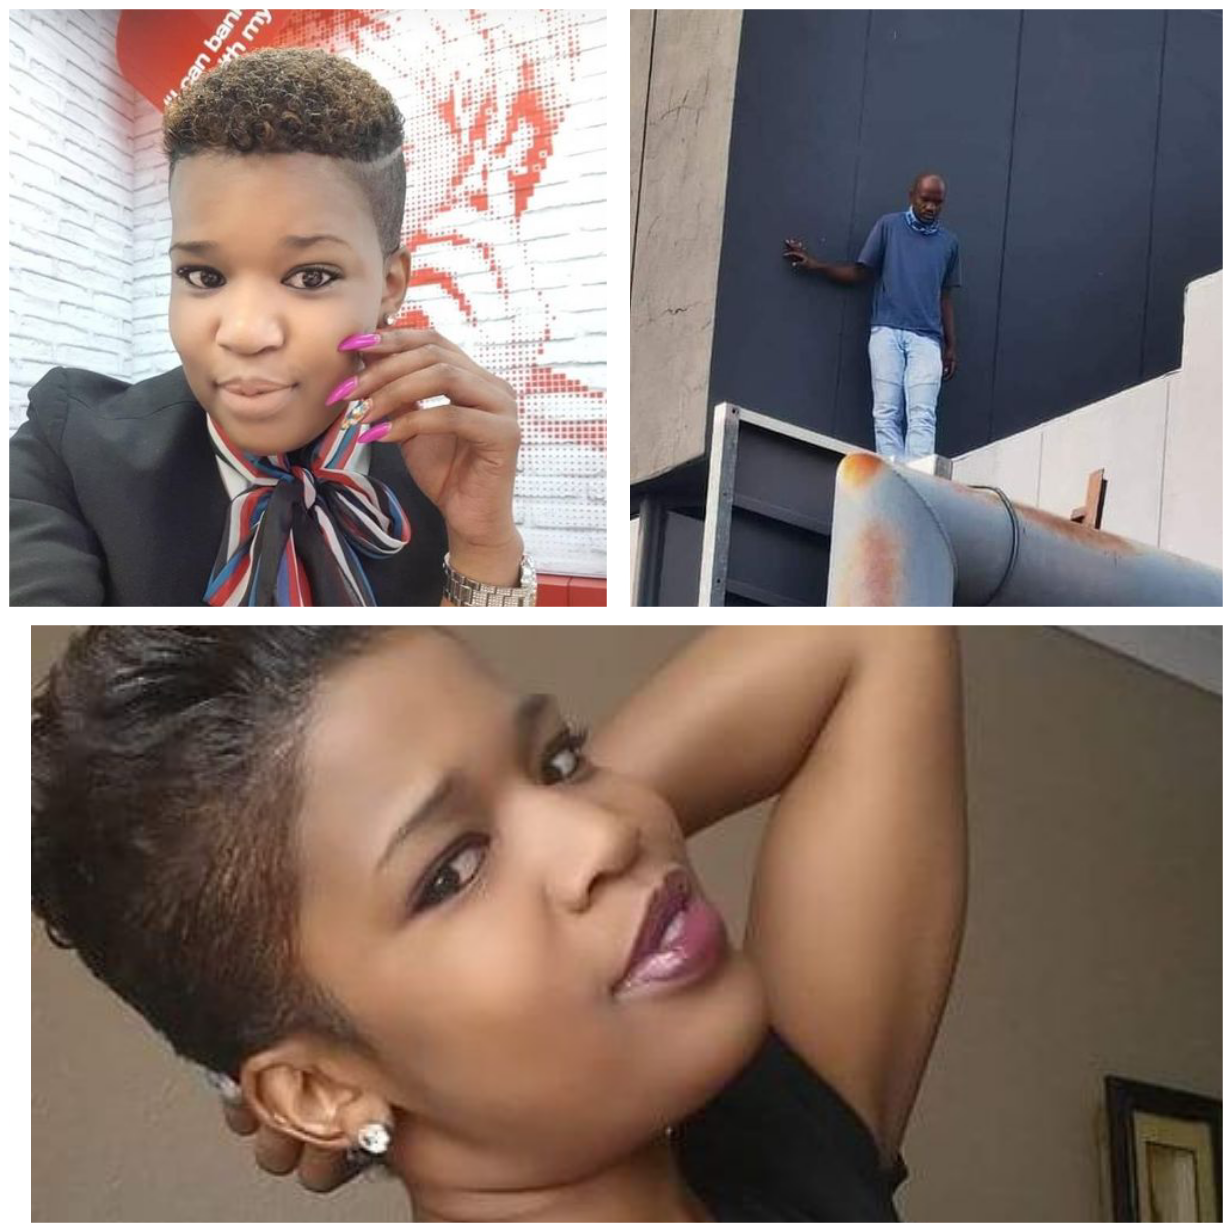 Update: Photos of the 32-year-old South African woman brutally murdered by her abusive boyfriend after she broke up with him